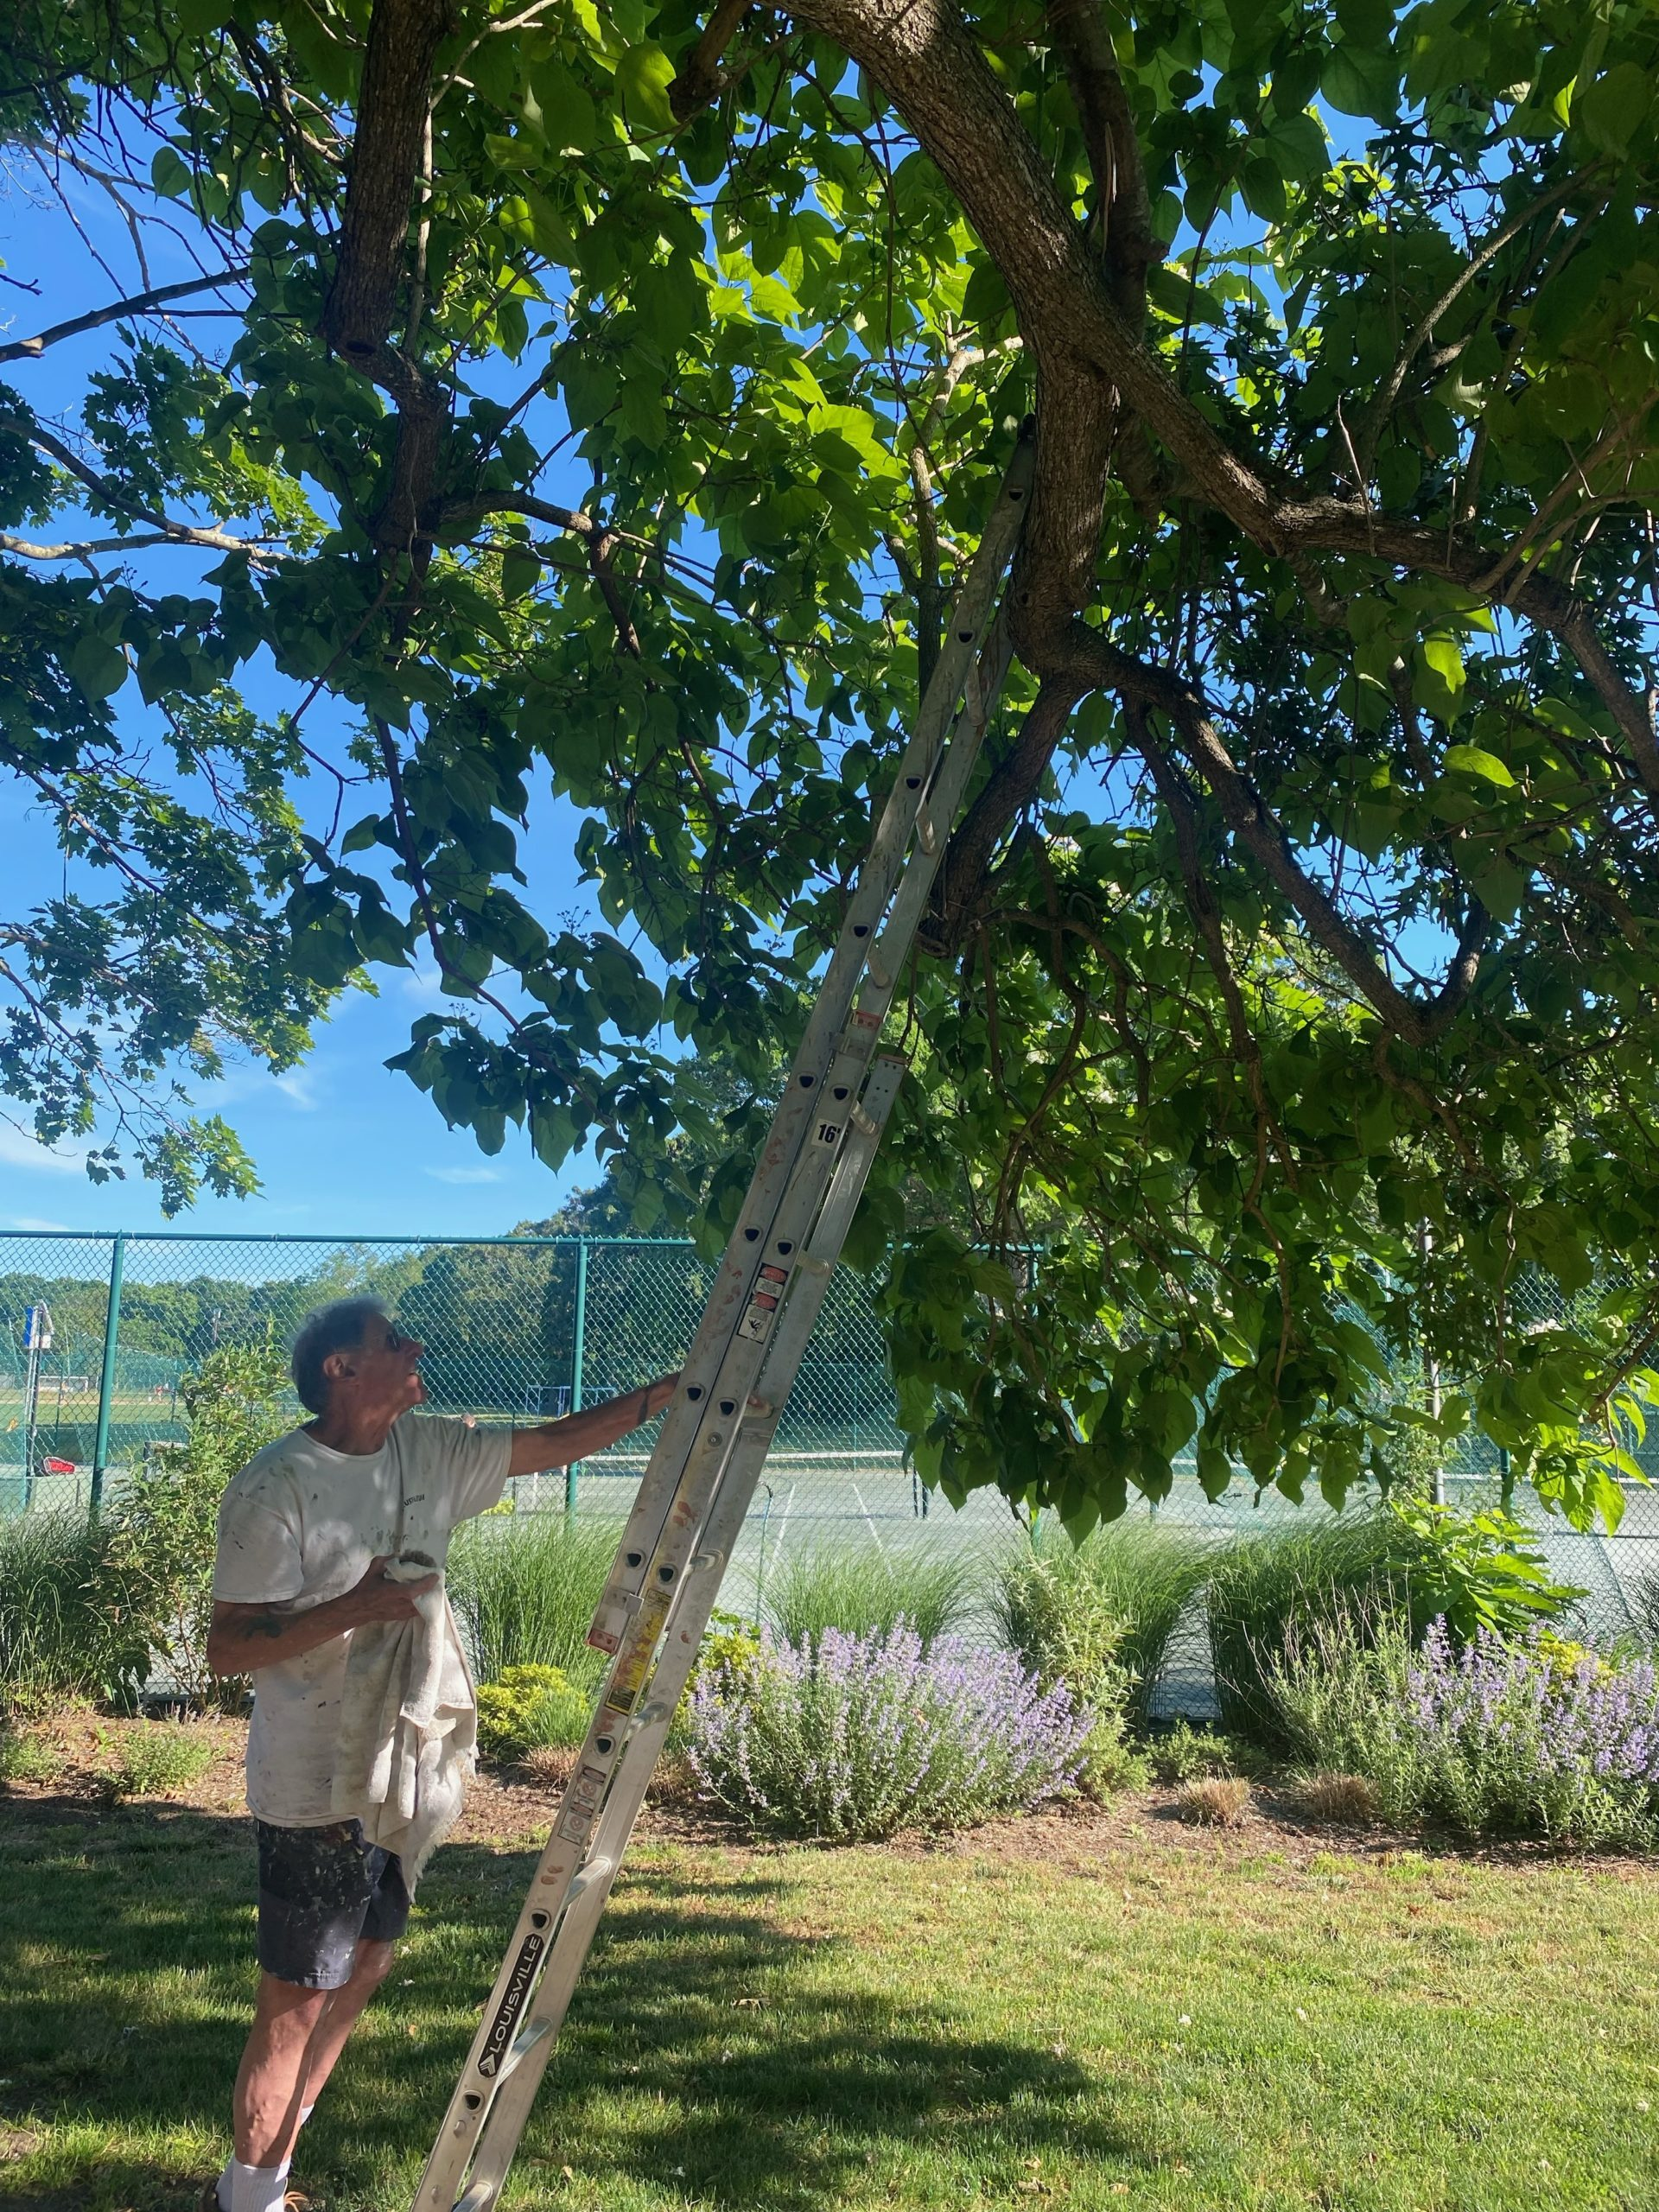 Nick Marzano uses his extension ladder to return the owlet to its tree in Mashashimuet Park. JACKIE HOVING